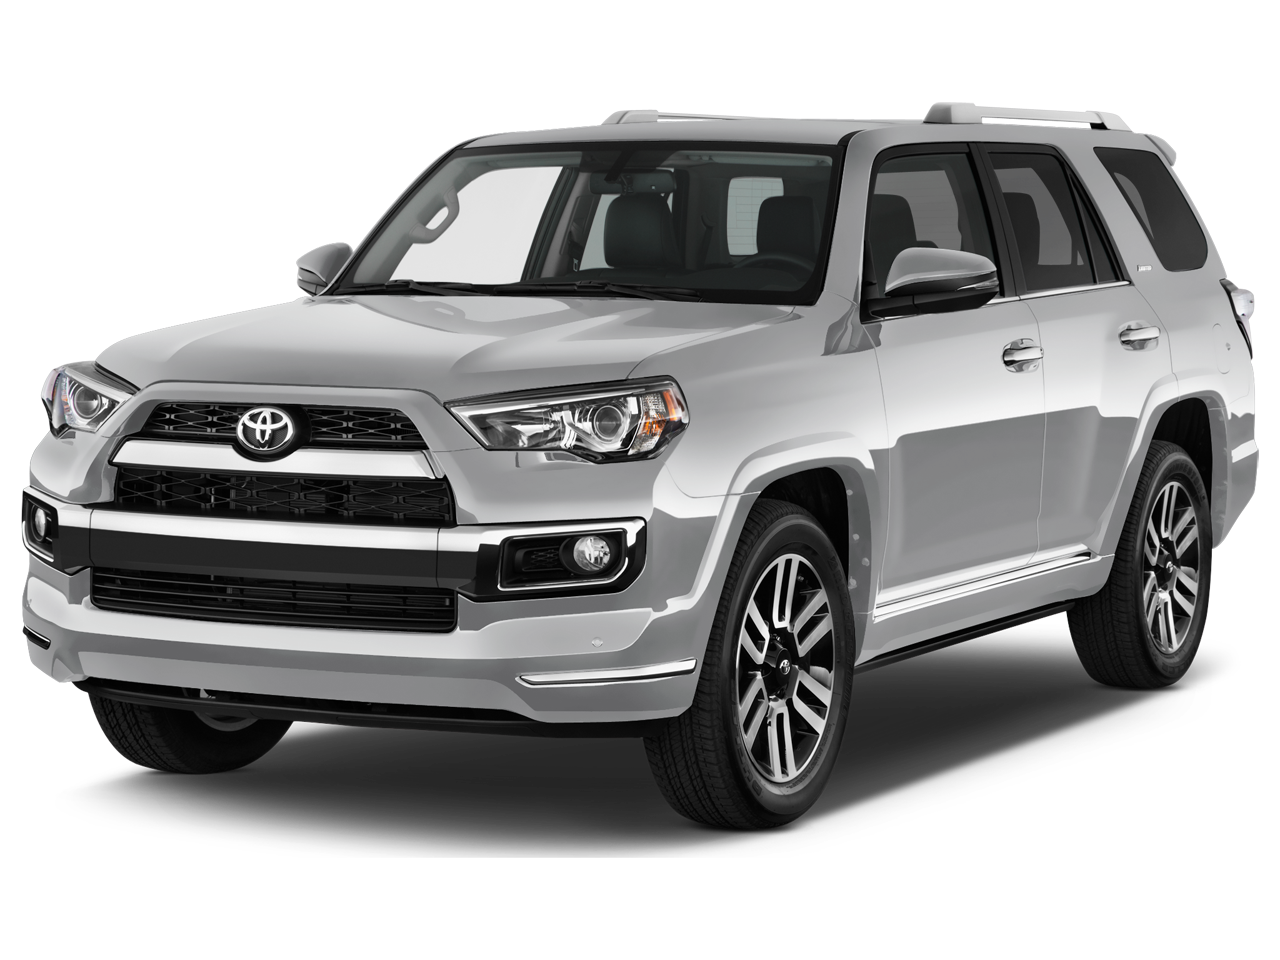 new 2016 toyota 4runner limited near milpitas ca. Black Bedroom Furniture Sets. Home Design Ideas